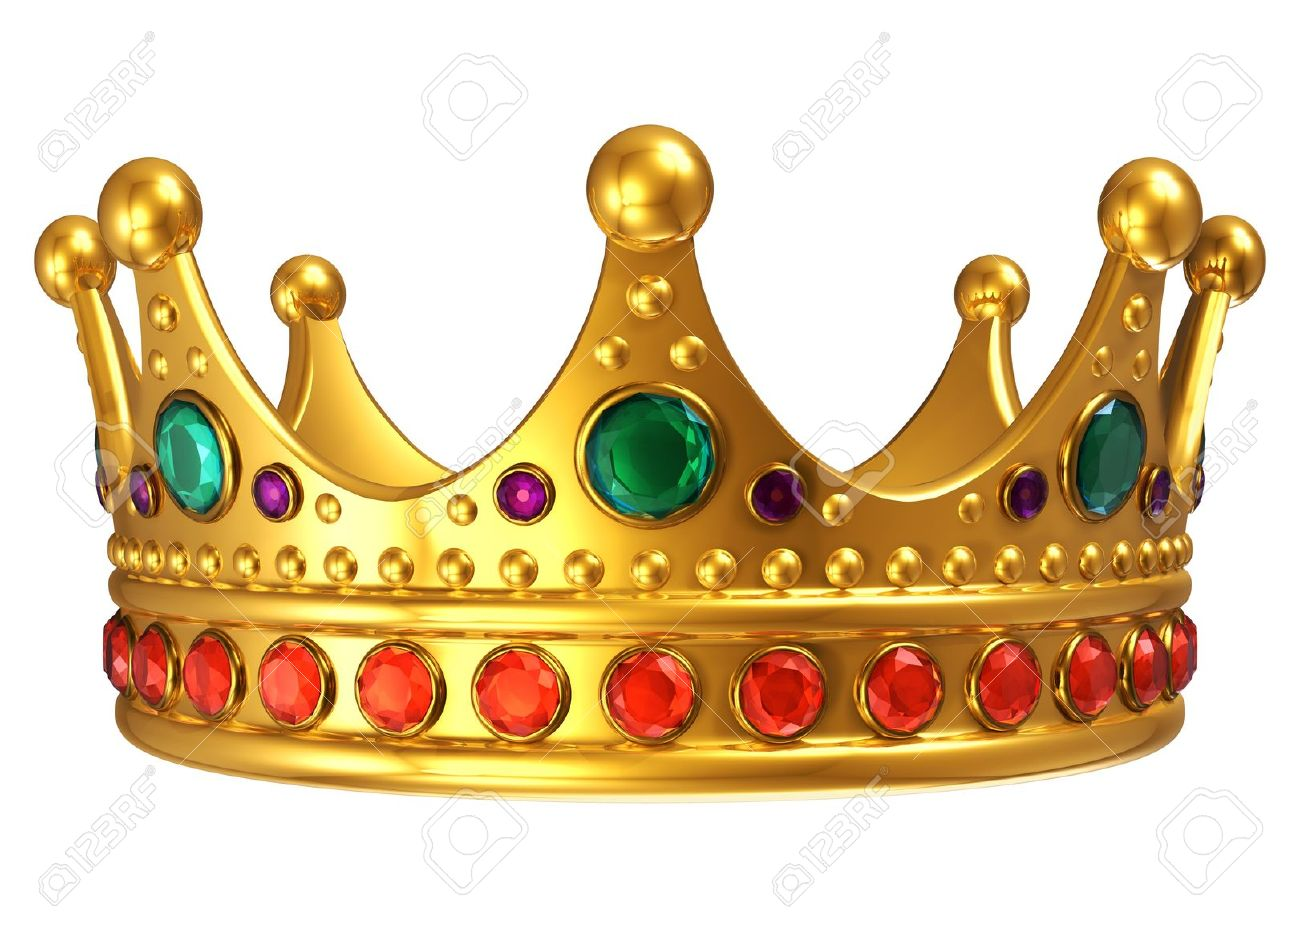 Collection of Crown Image on HDWallpapers